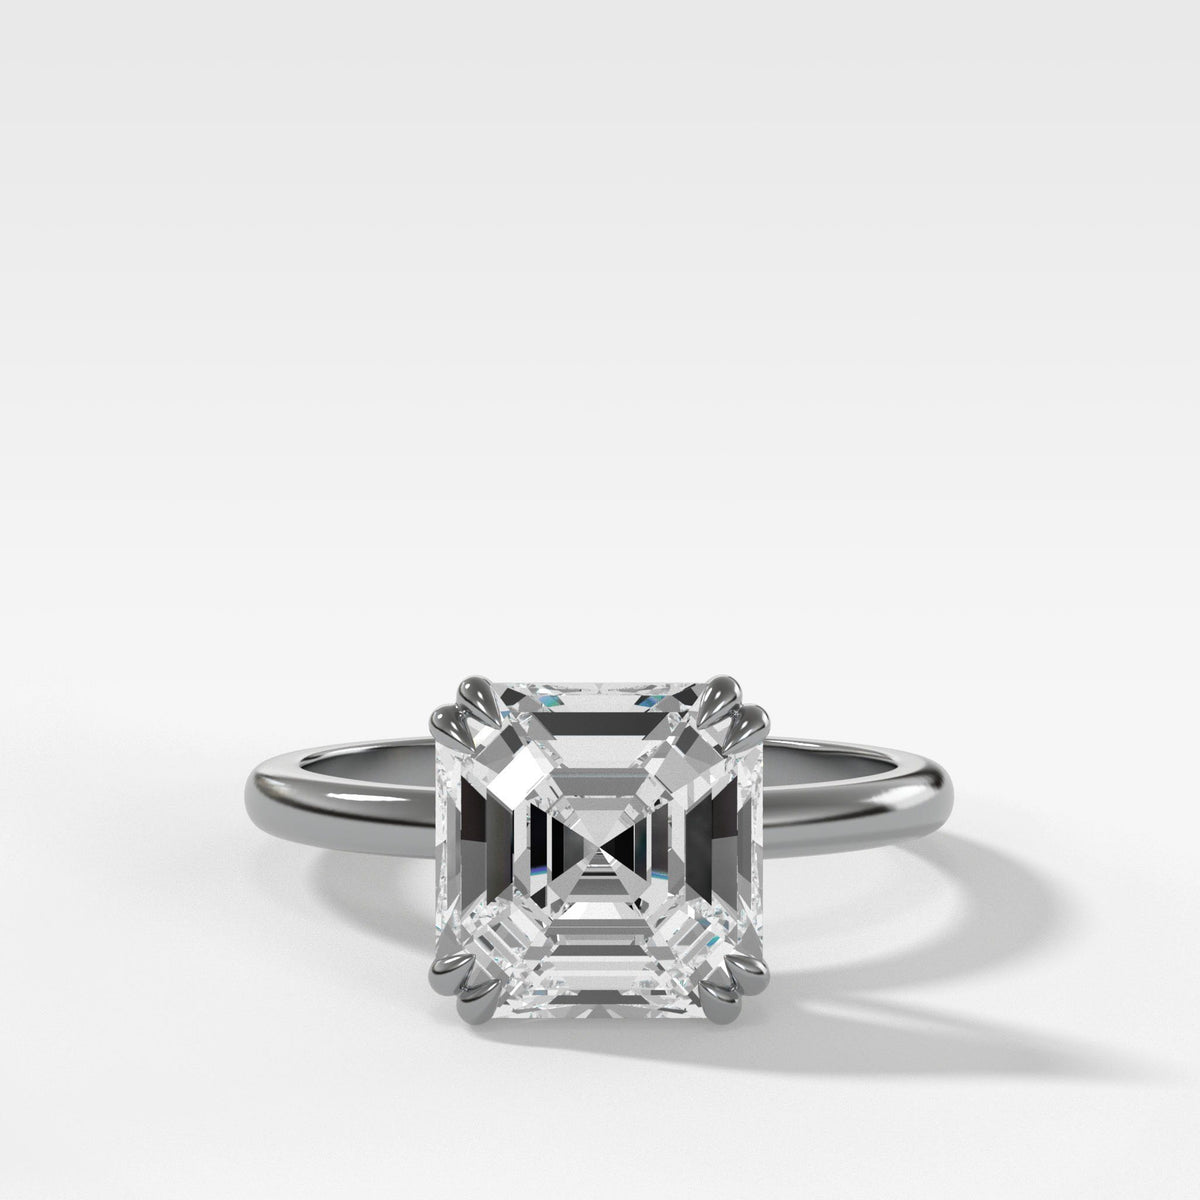 Signature Cathedral Solitaire With Asscher Cut Engagement Good Stone Inc White Gold 14k